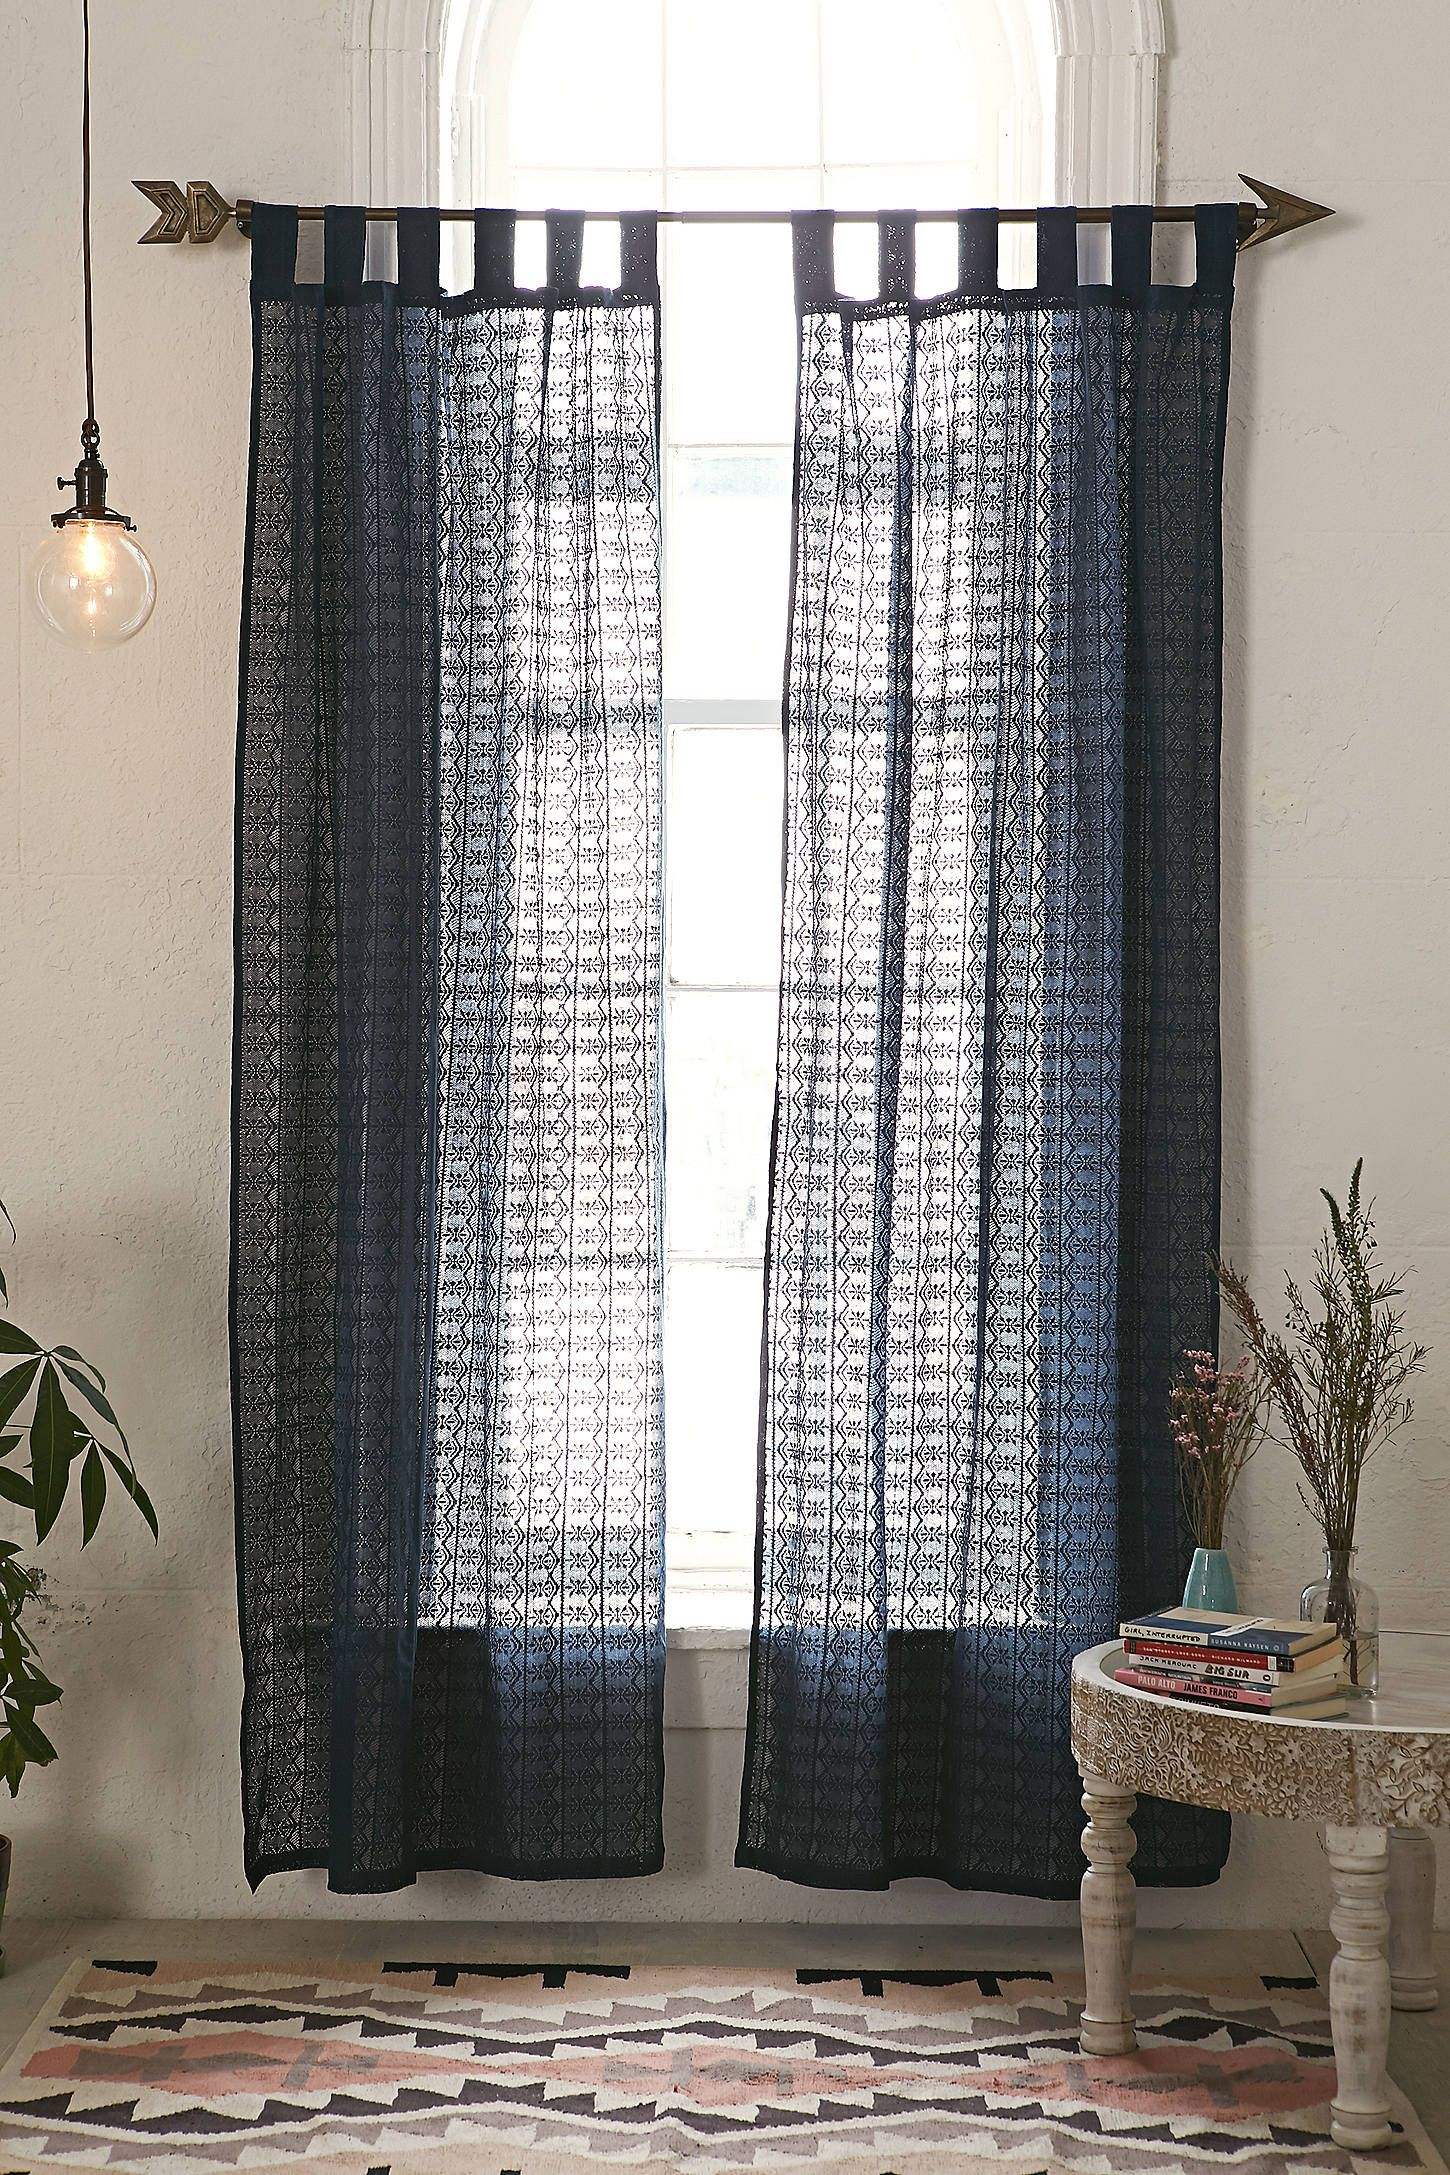 Window treatment ideas for apartment  lace curtain  bedrooms